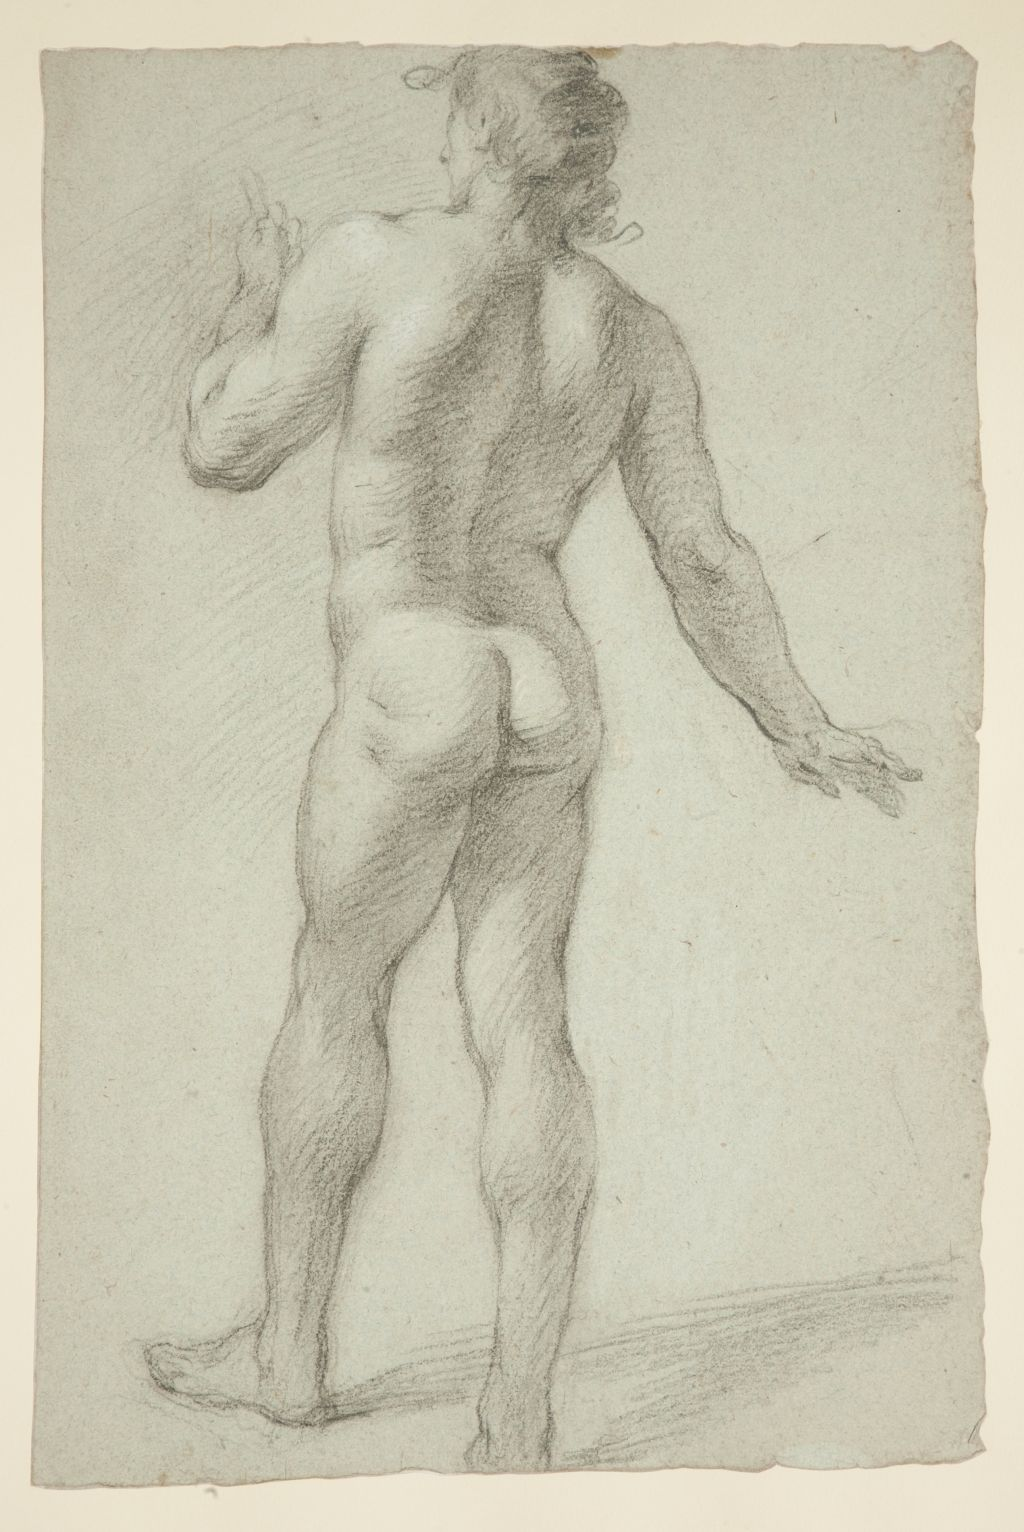 Study of a man seen from the back, Antonio Palomino y Velasco